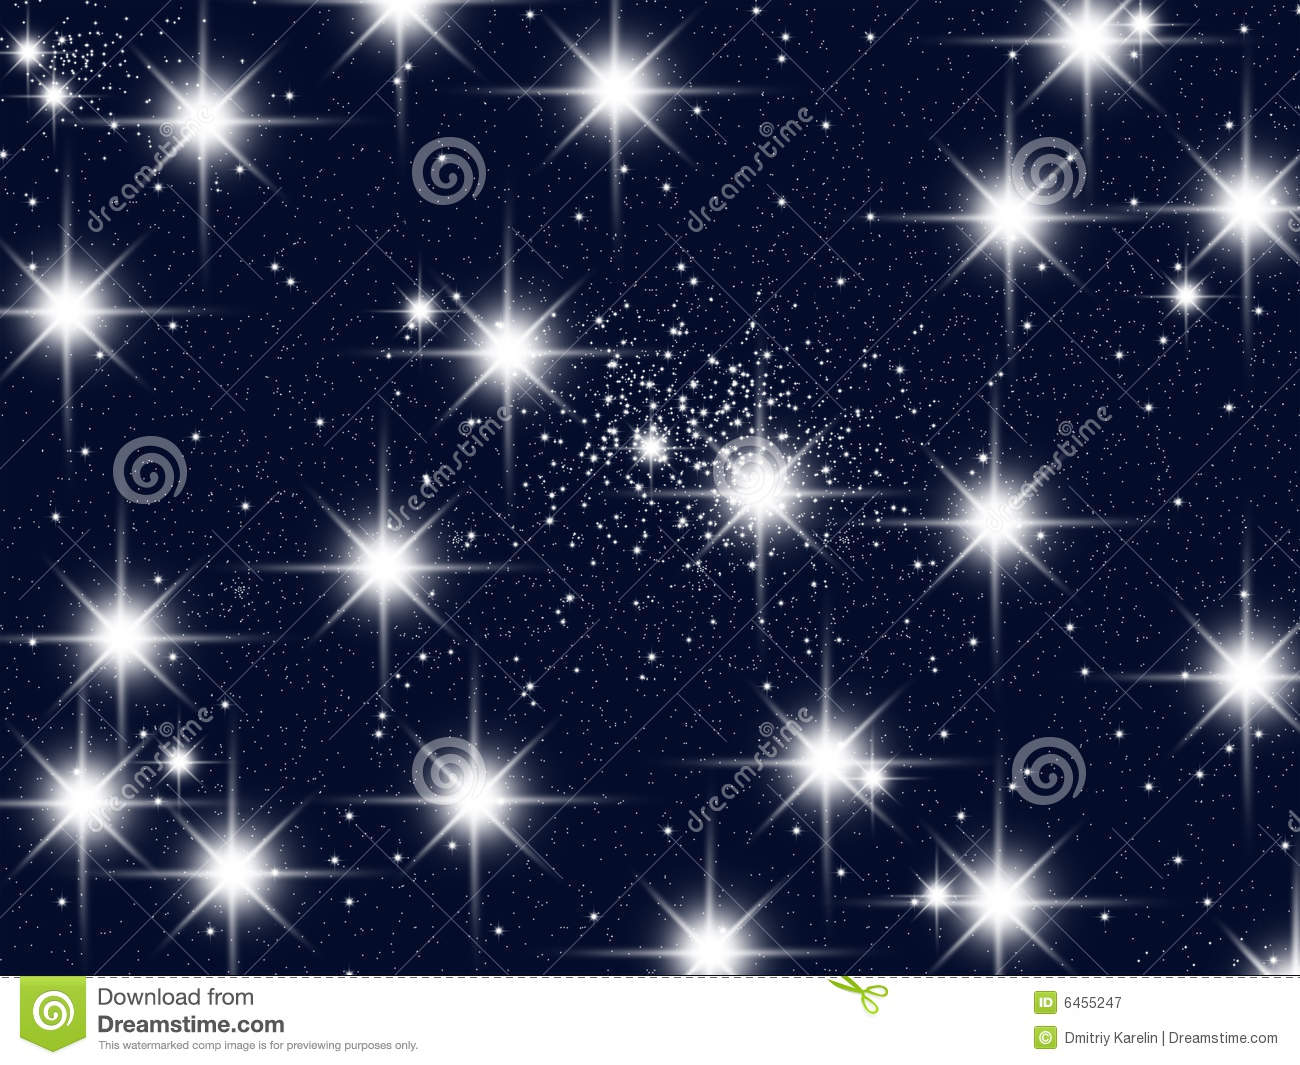 A congestion of stars